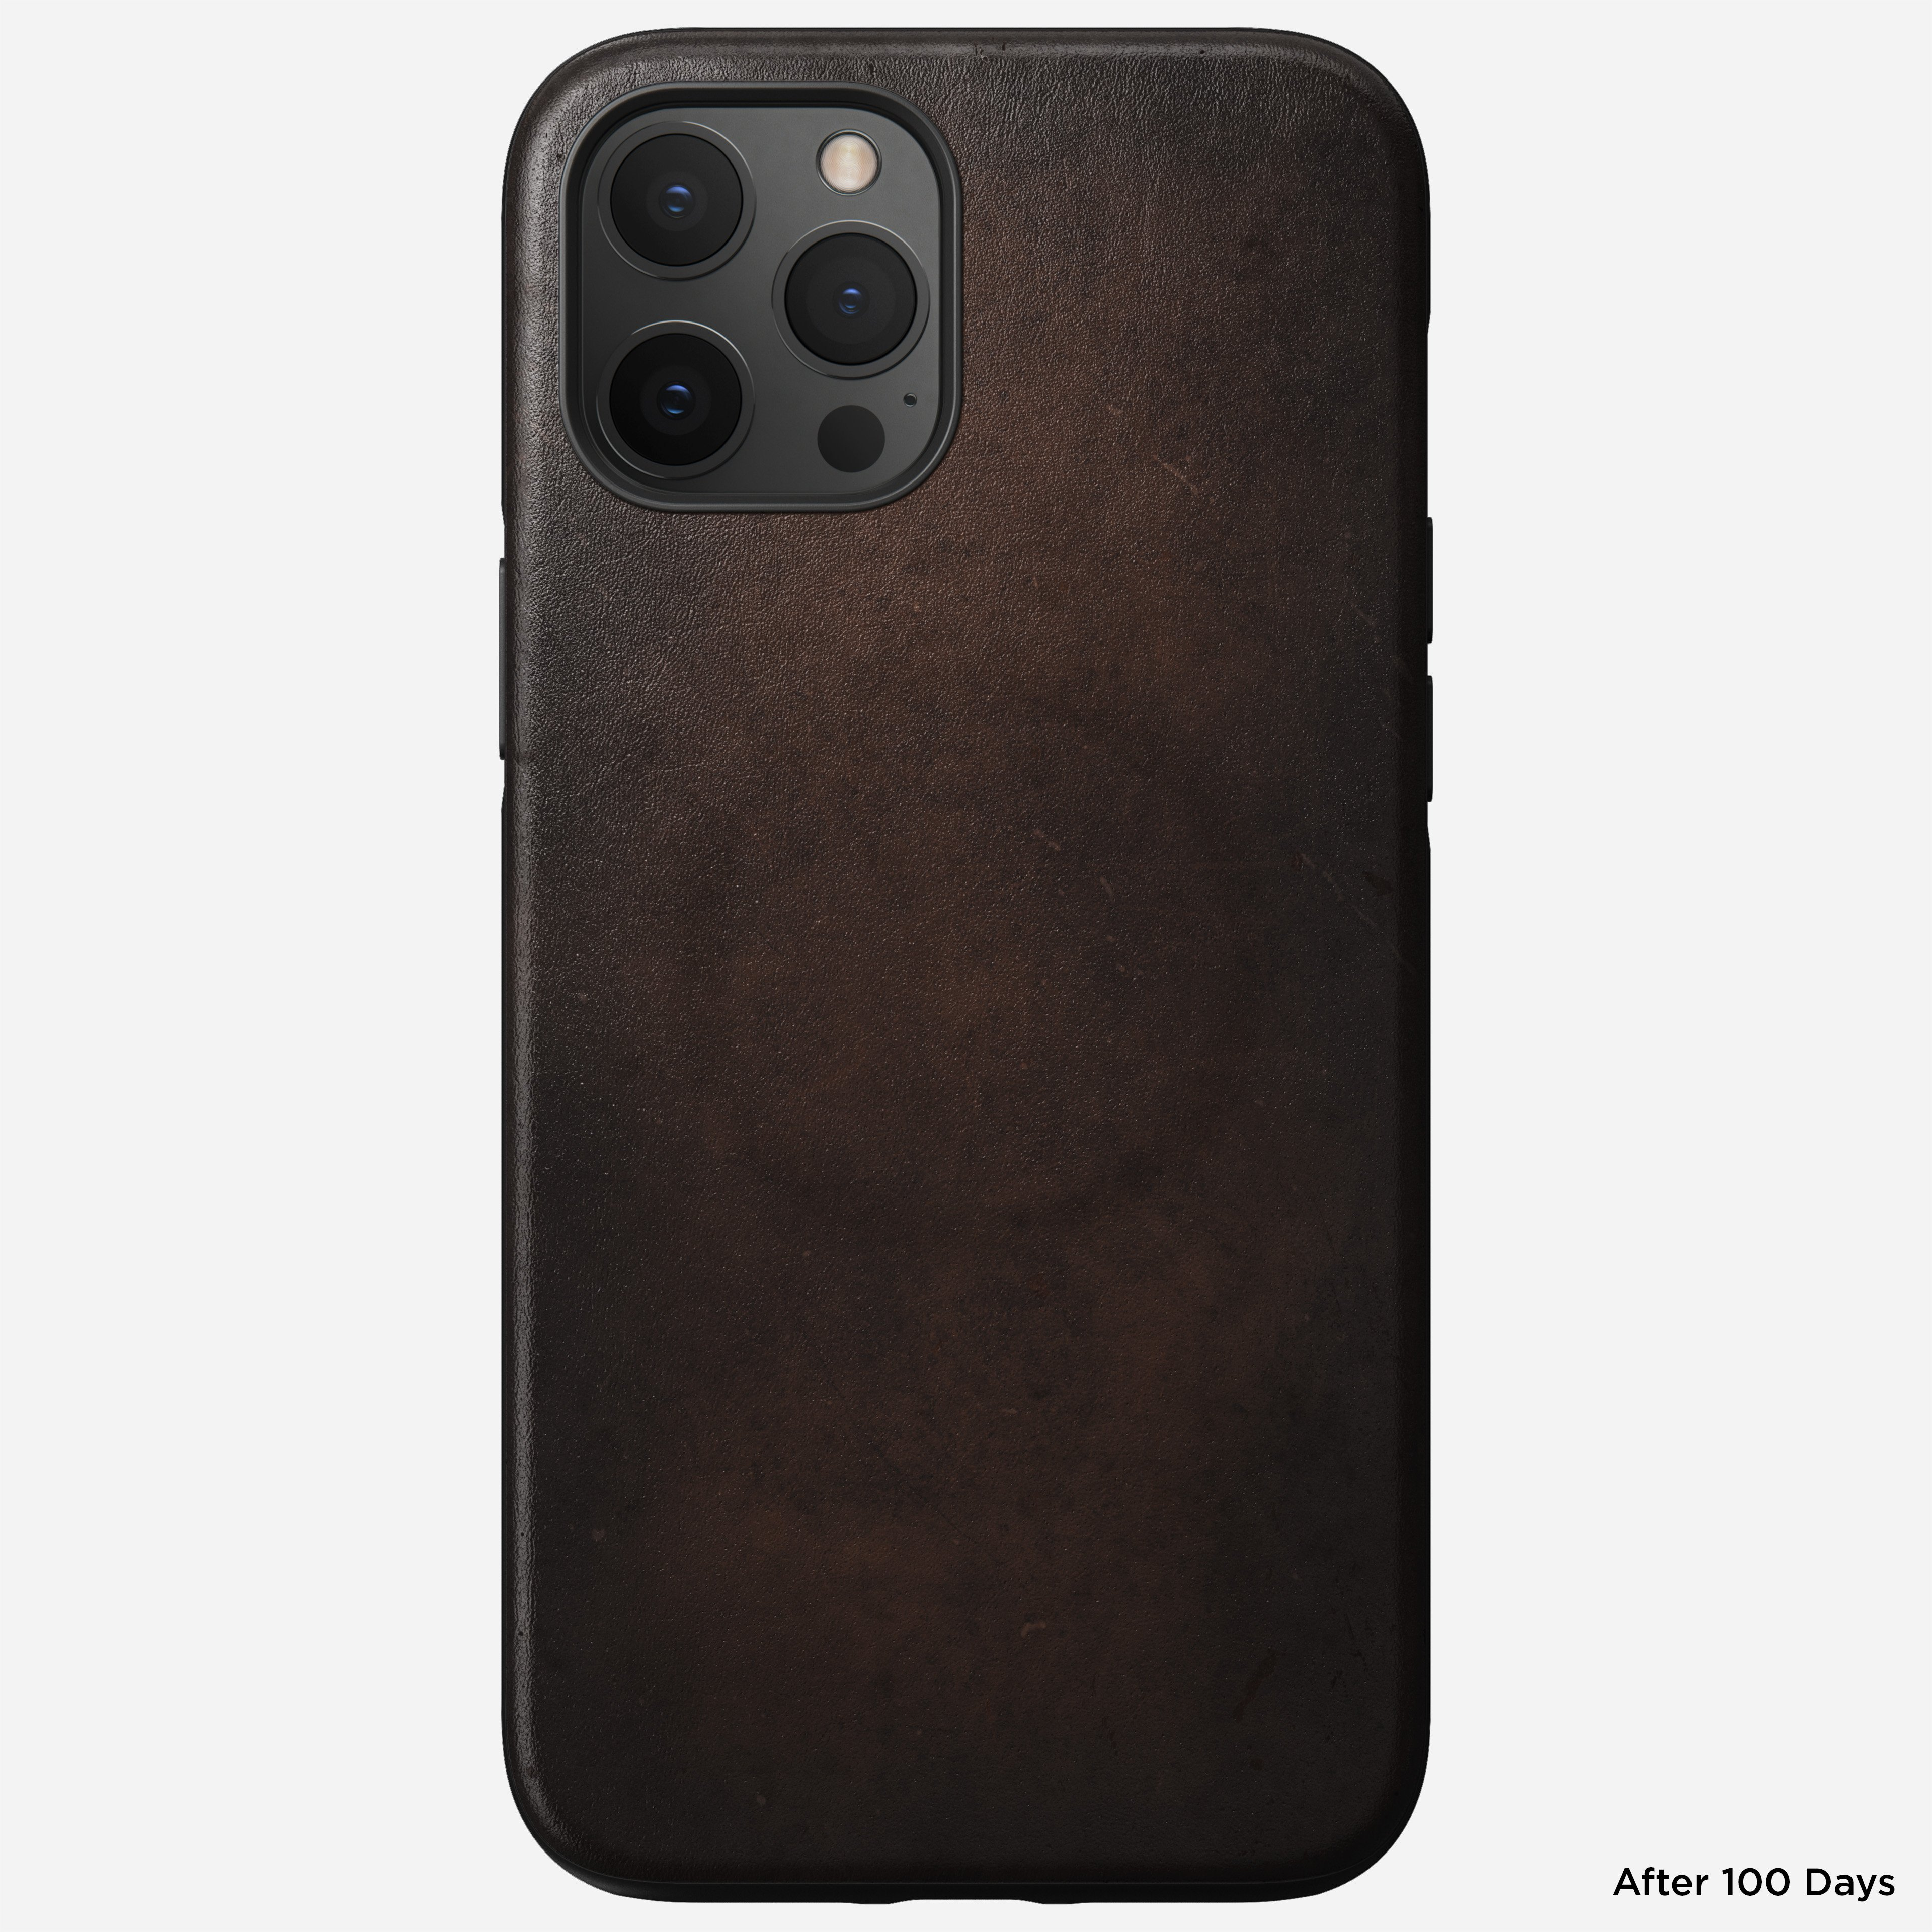 Rugged case magsafe horween leather rustic brown iphone 12 pro max